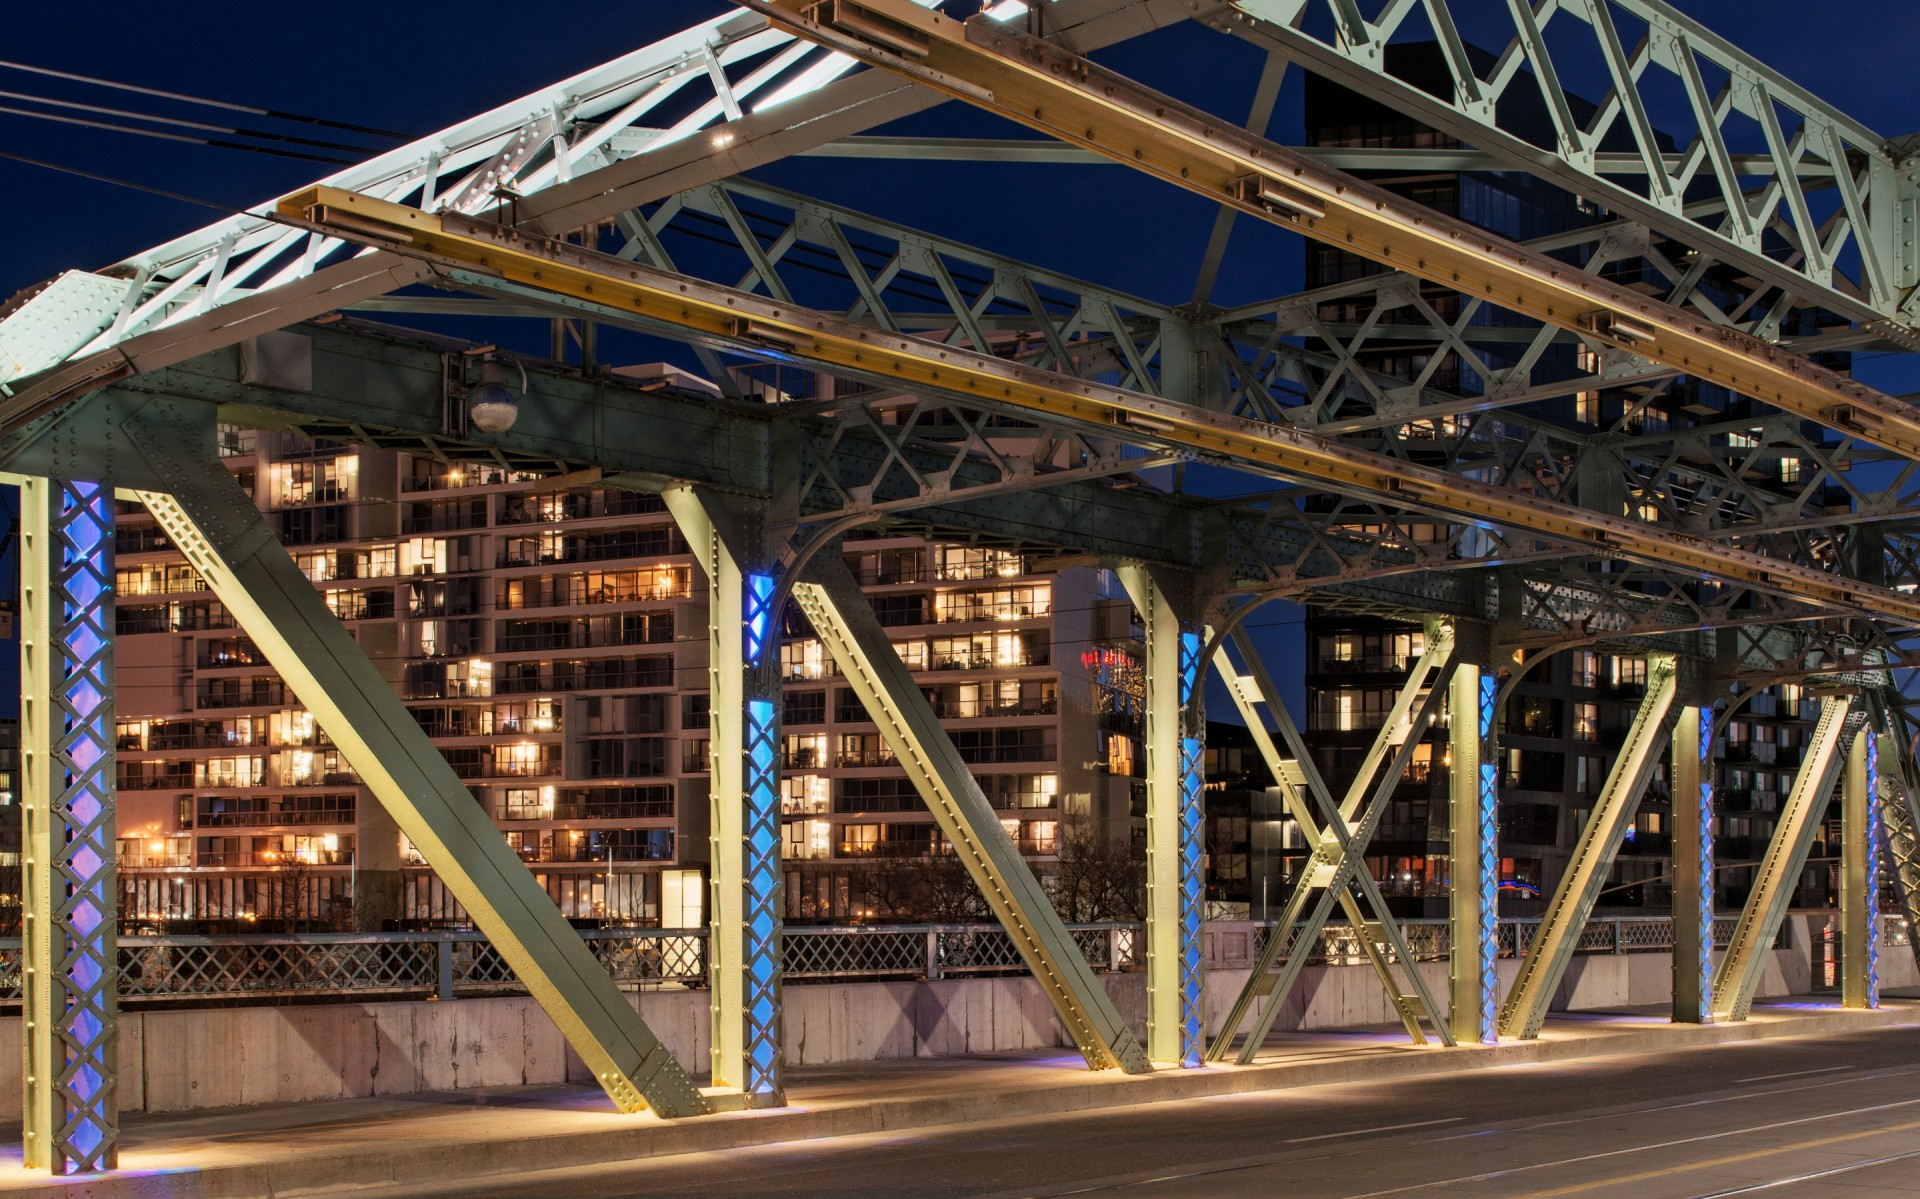 To light the bridge, Mulvey & Banani Lighting used Lumenbeam Small and Medium luminaires, with different distributions.